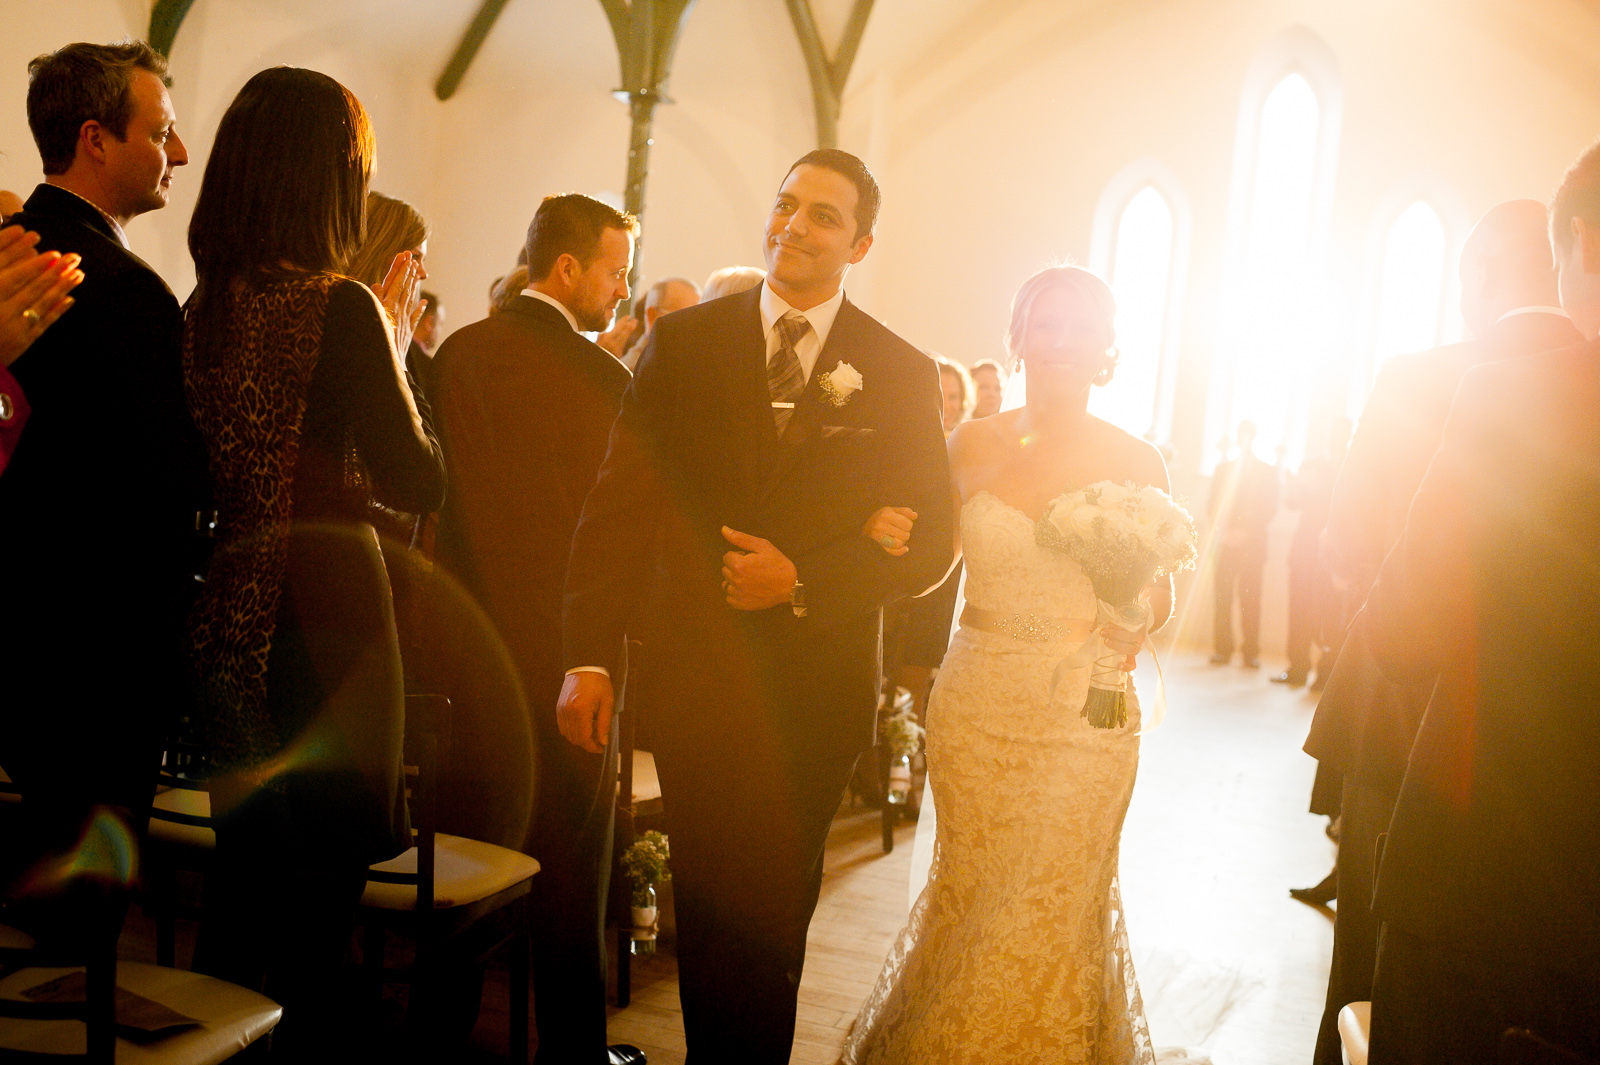 Bride and groom walk down the isle after their wedding ceremony at the Enoch Turner Schoolhouse in Toronto.